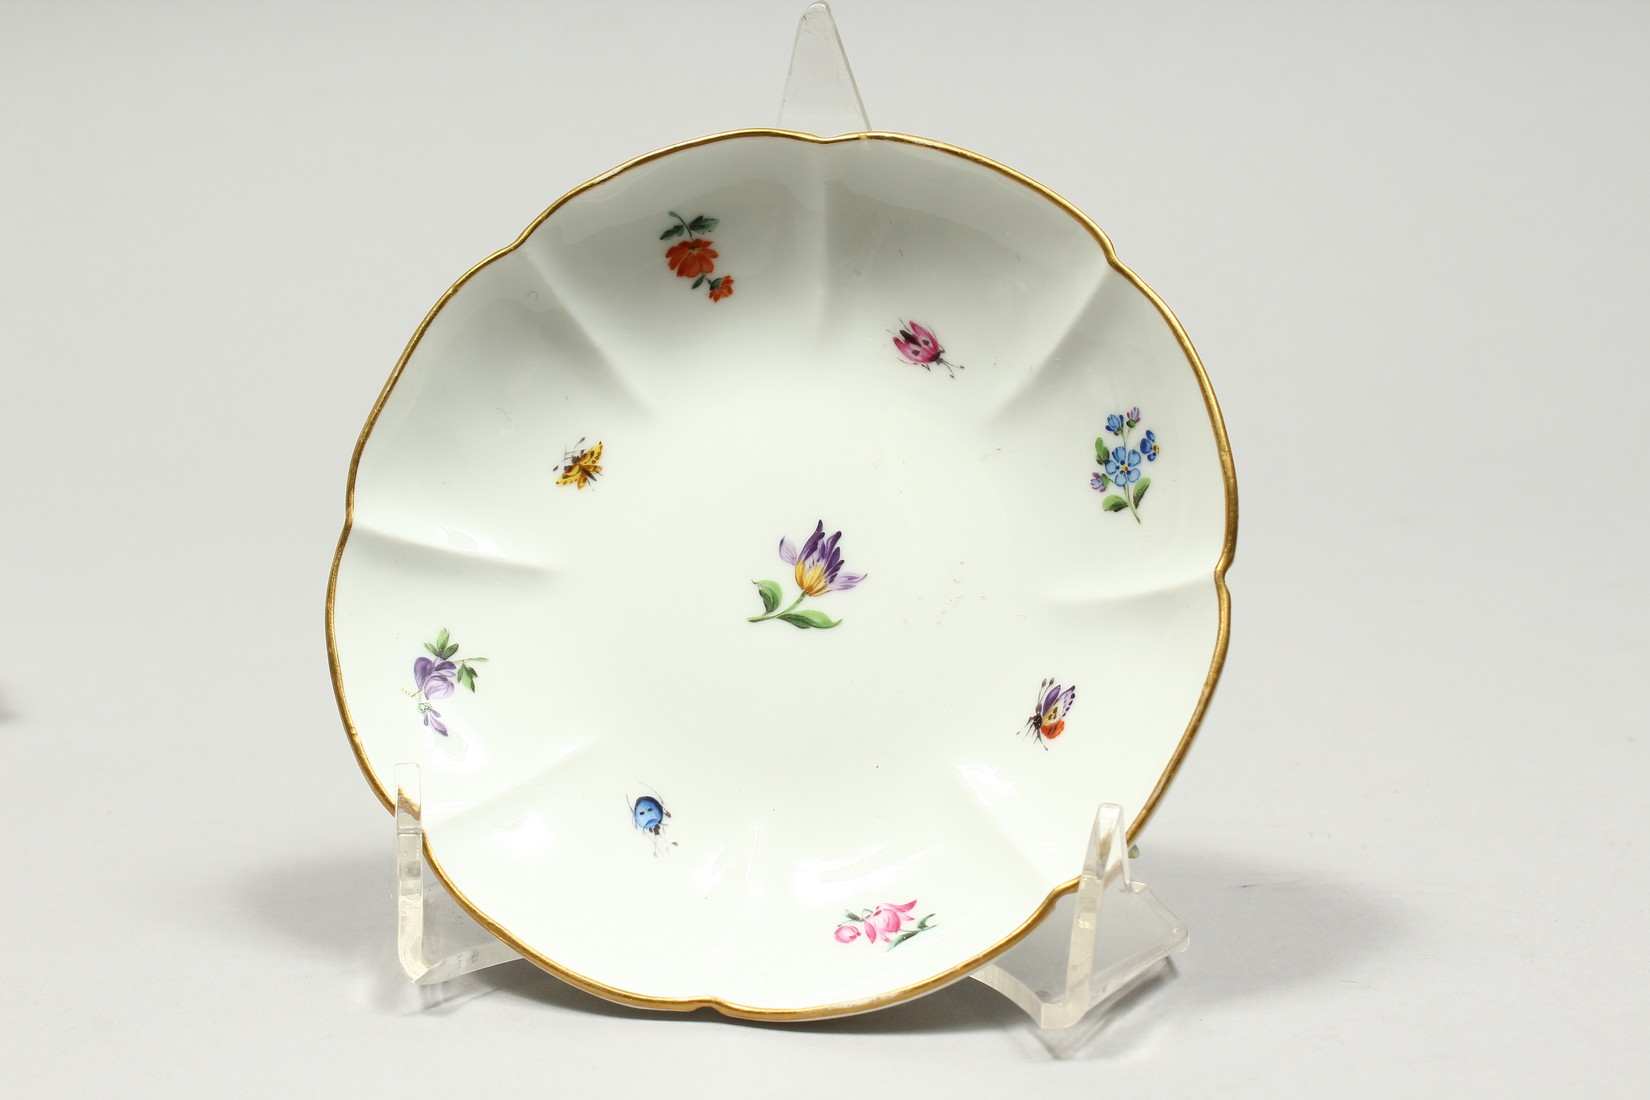 TWO MEISSEN PORCELAIN CUPS AND SAUCERS AND A SAUCER, encrusted with flowers and painted with - Image 10 of 16